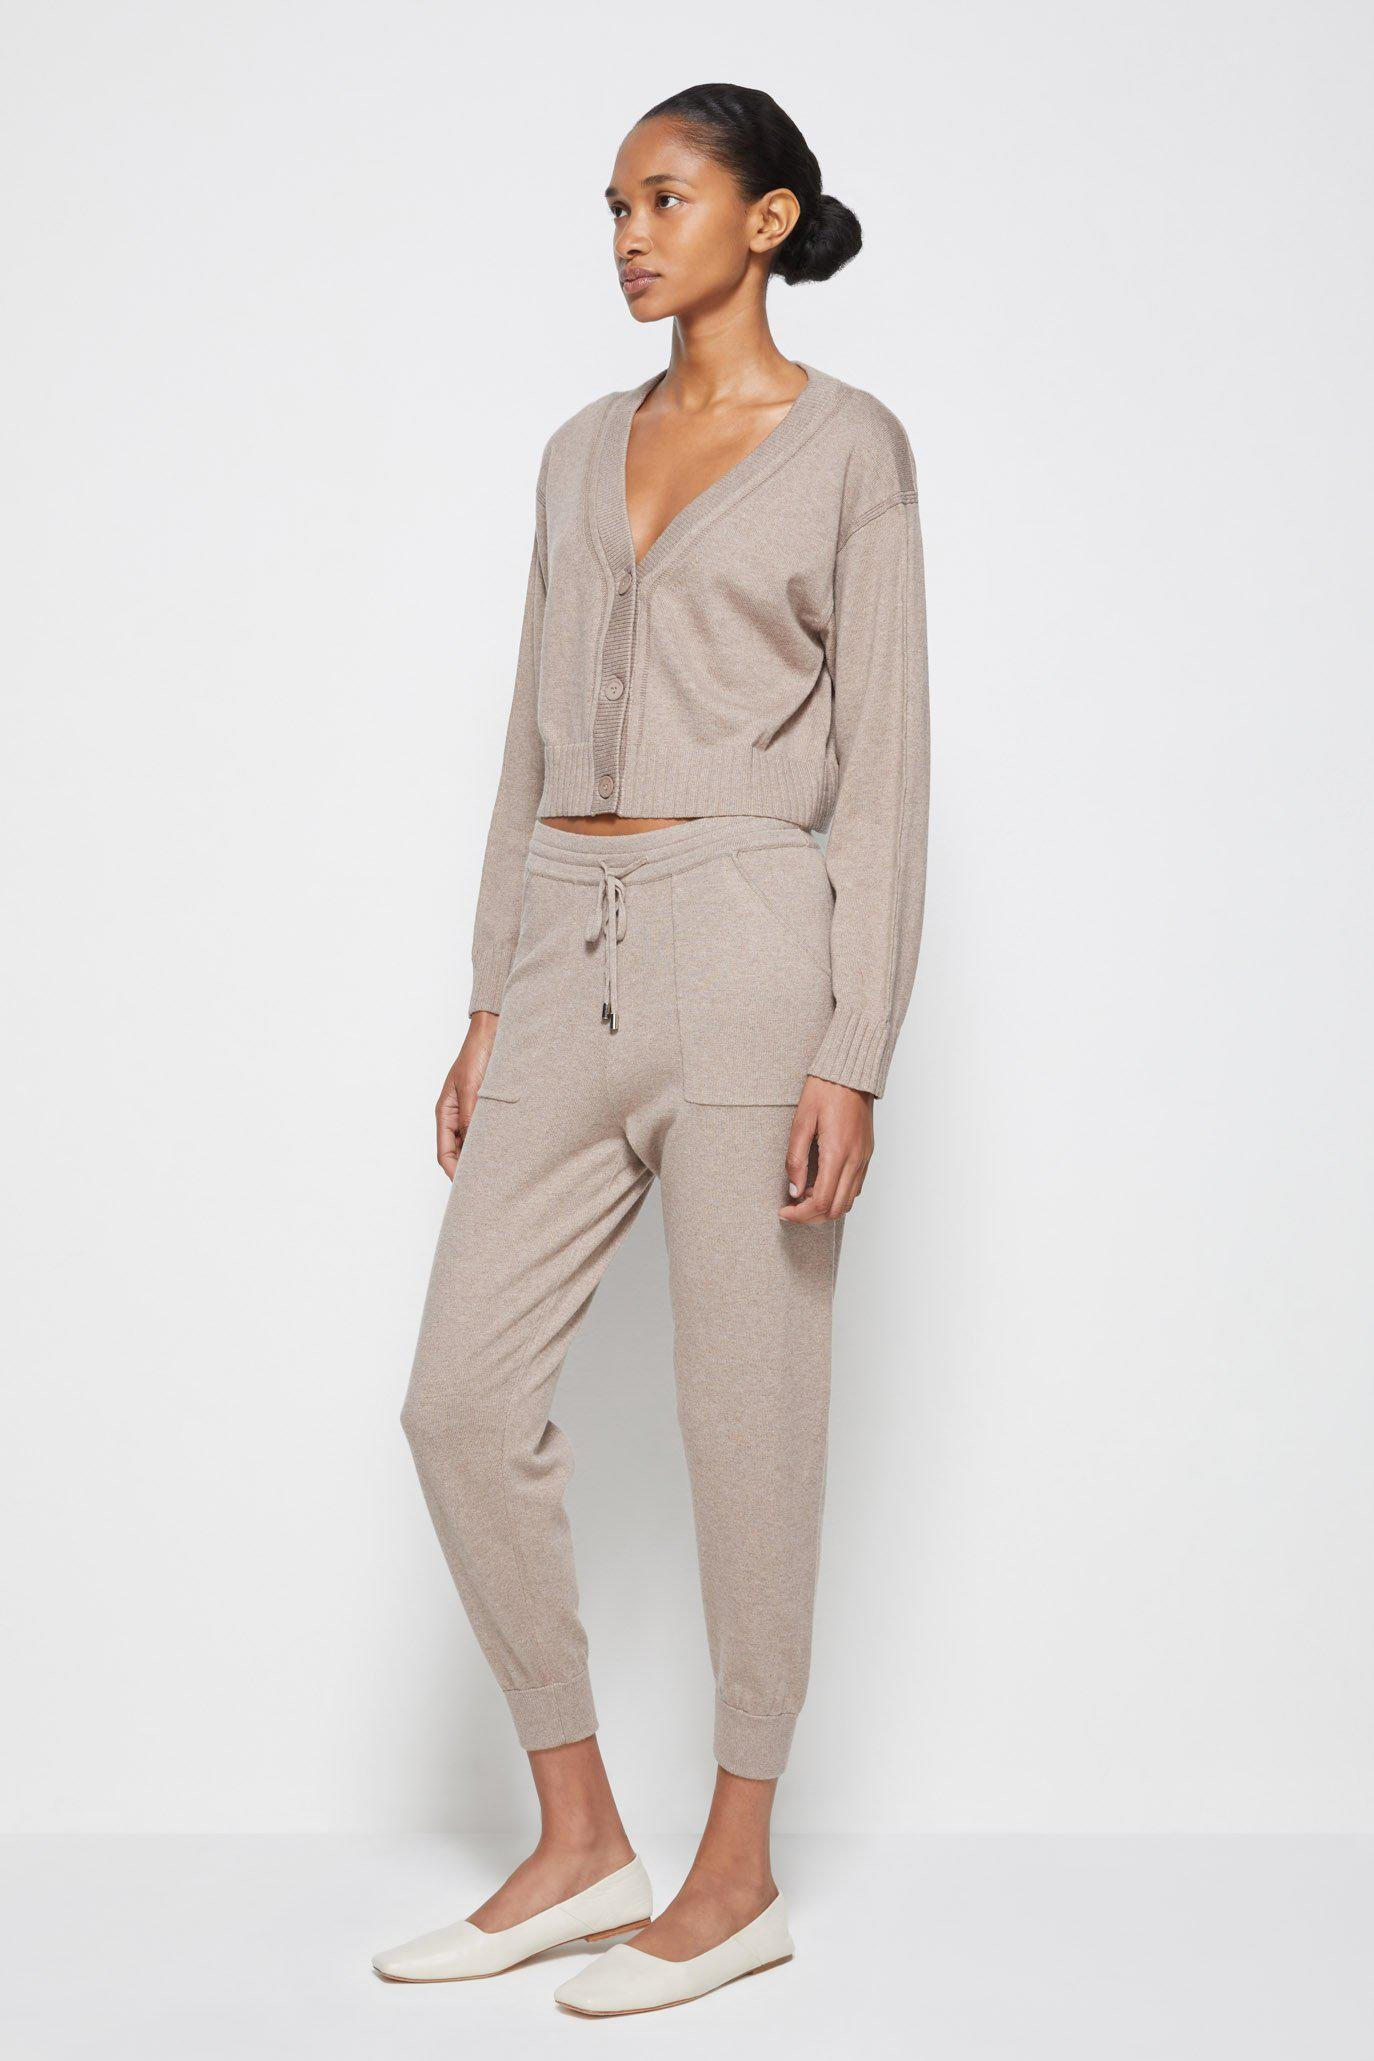 Off-Duty Cashmere Joggers 3